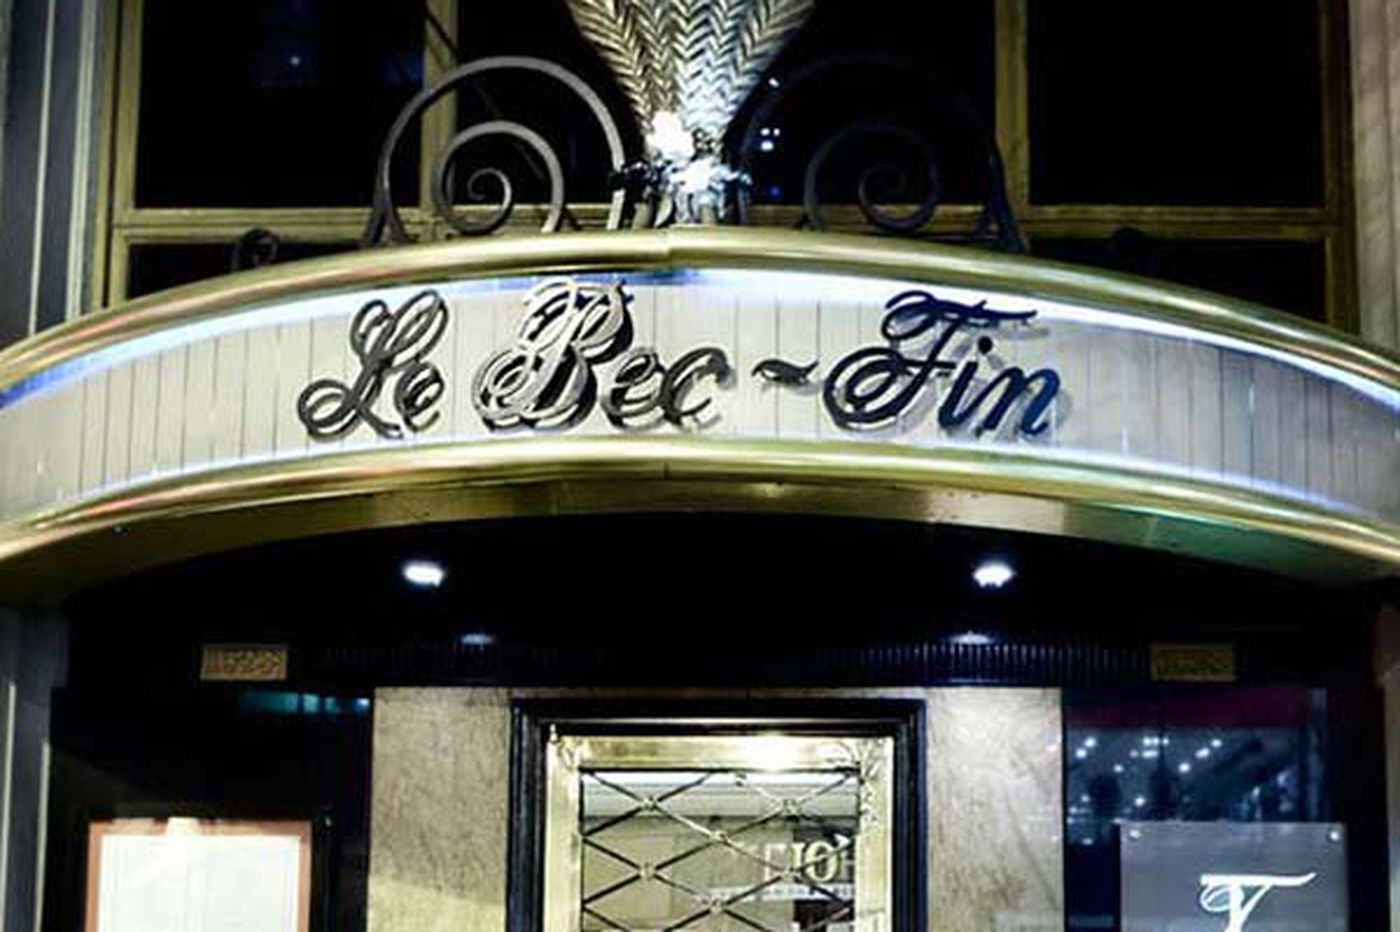 Dining icon Le Bec Fin to 'retire'